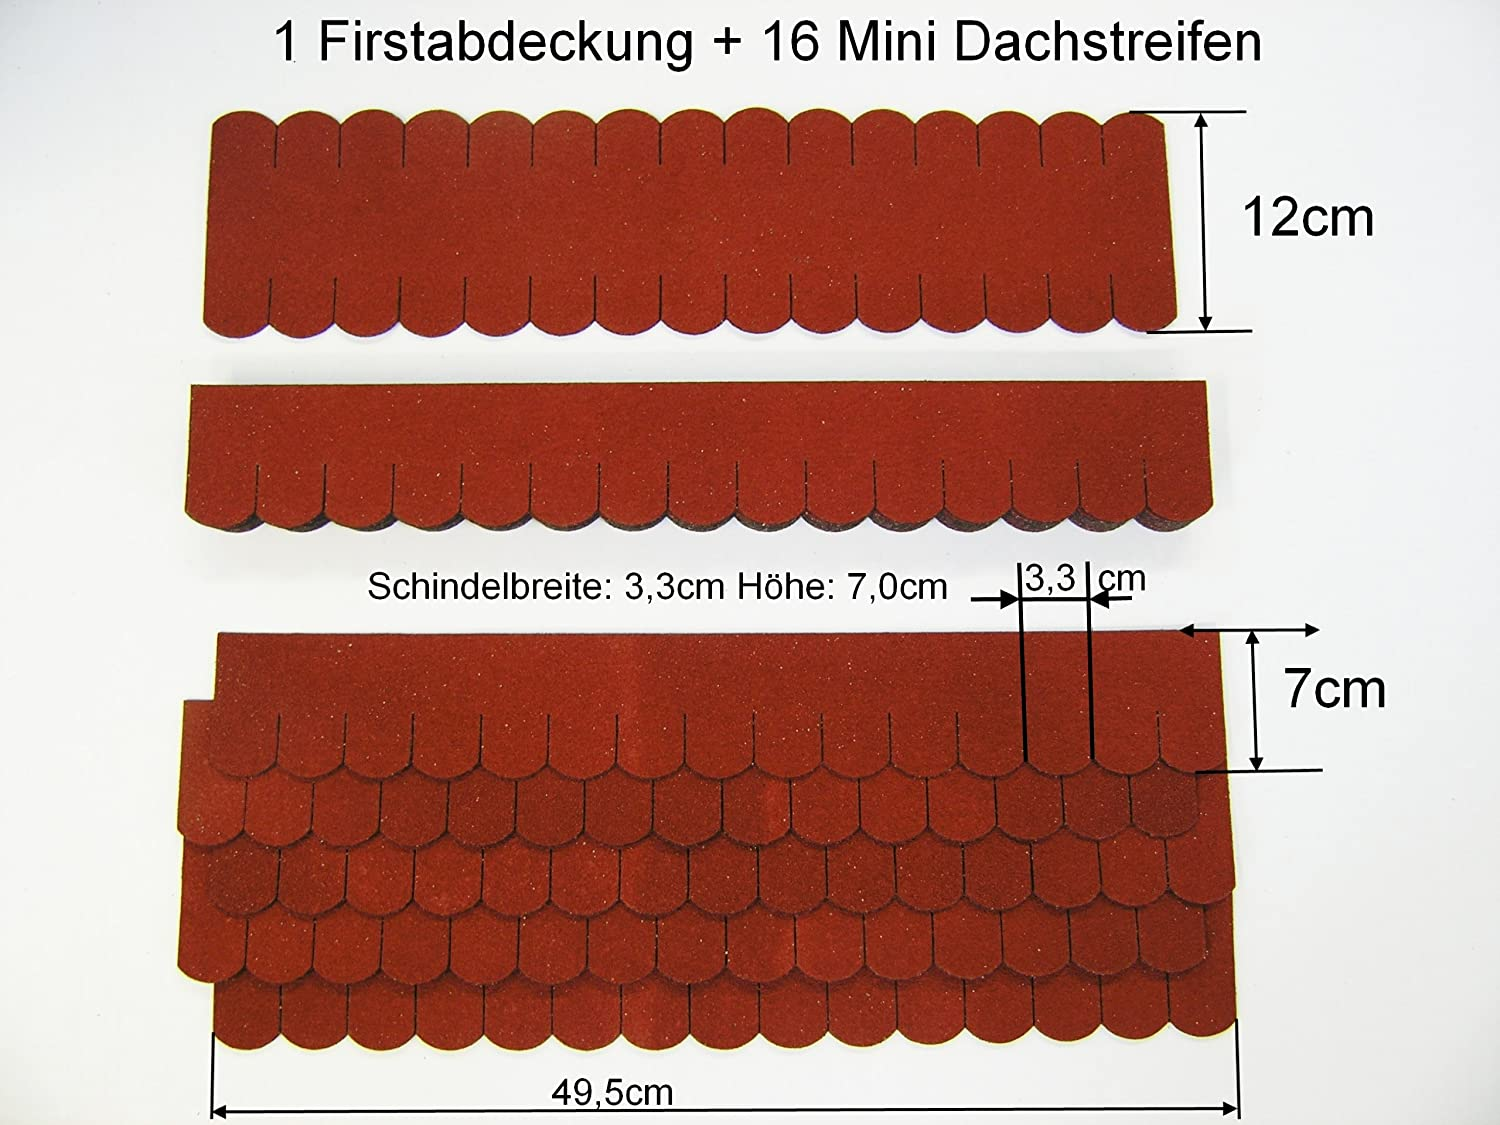 Mini Roof Shingles Beaver Tail Set Small 49.5x7cm Red '58' Werkstätten Martinshof